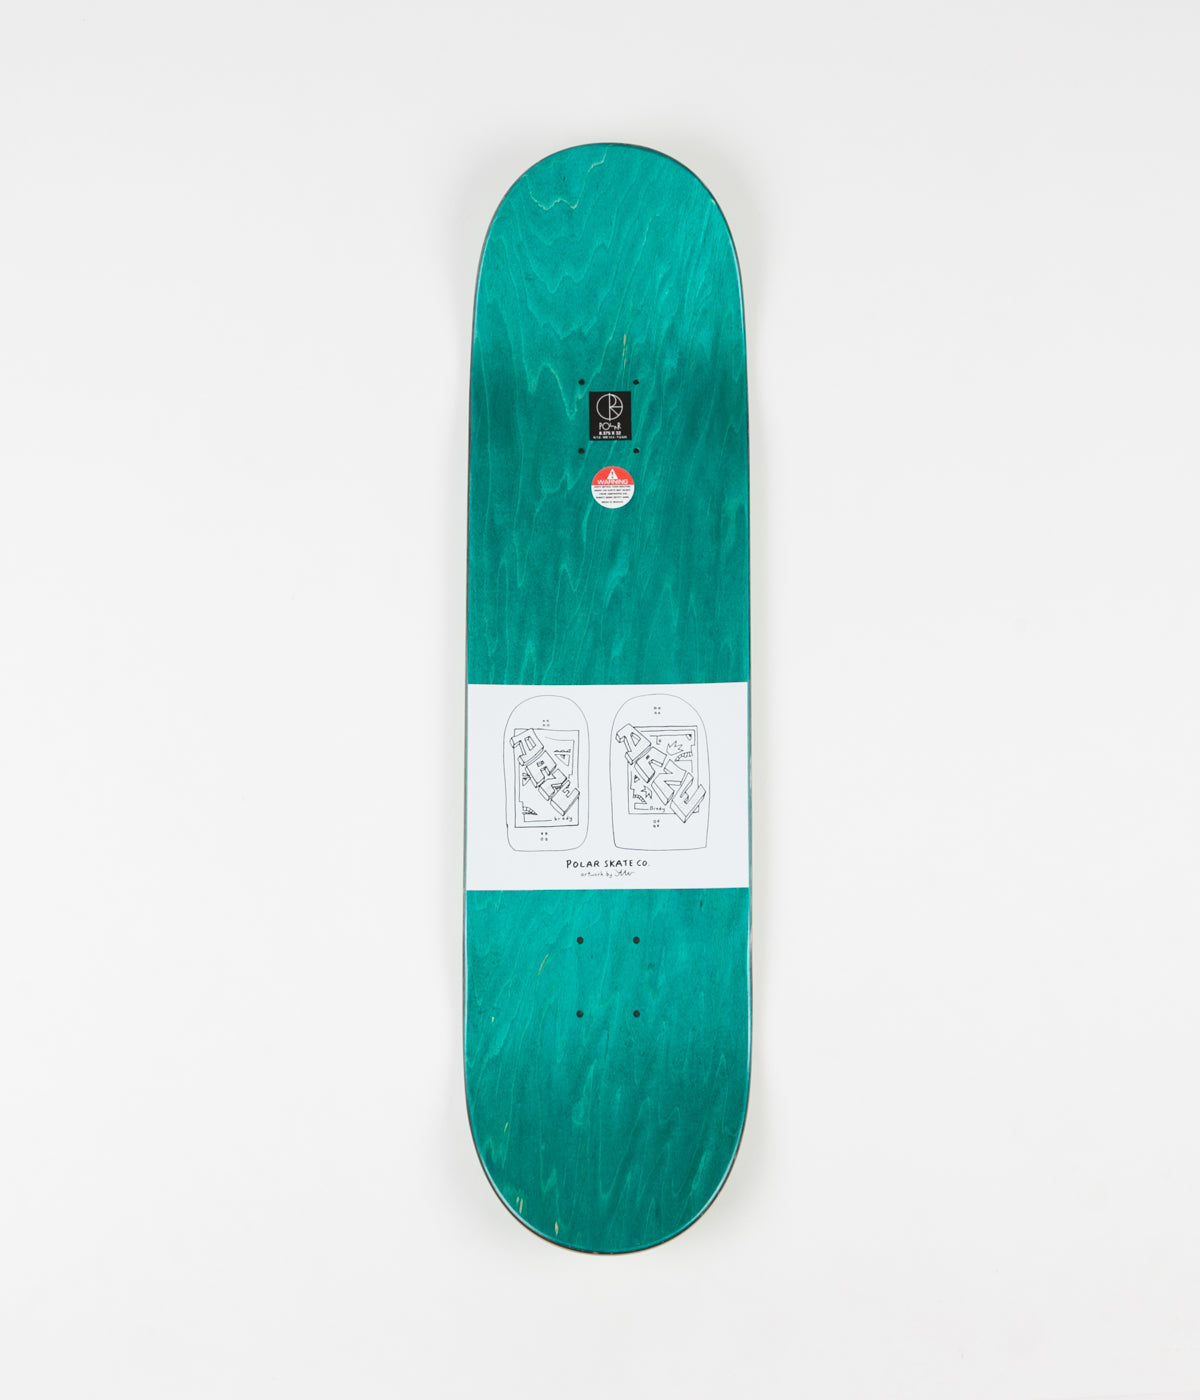 Polar Dane Brady Cake Face Deck - Green - 8.38""